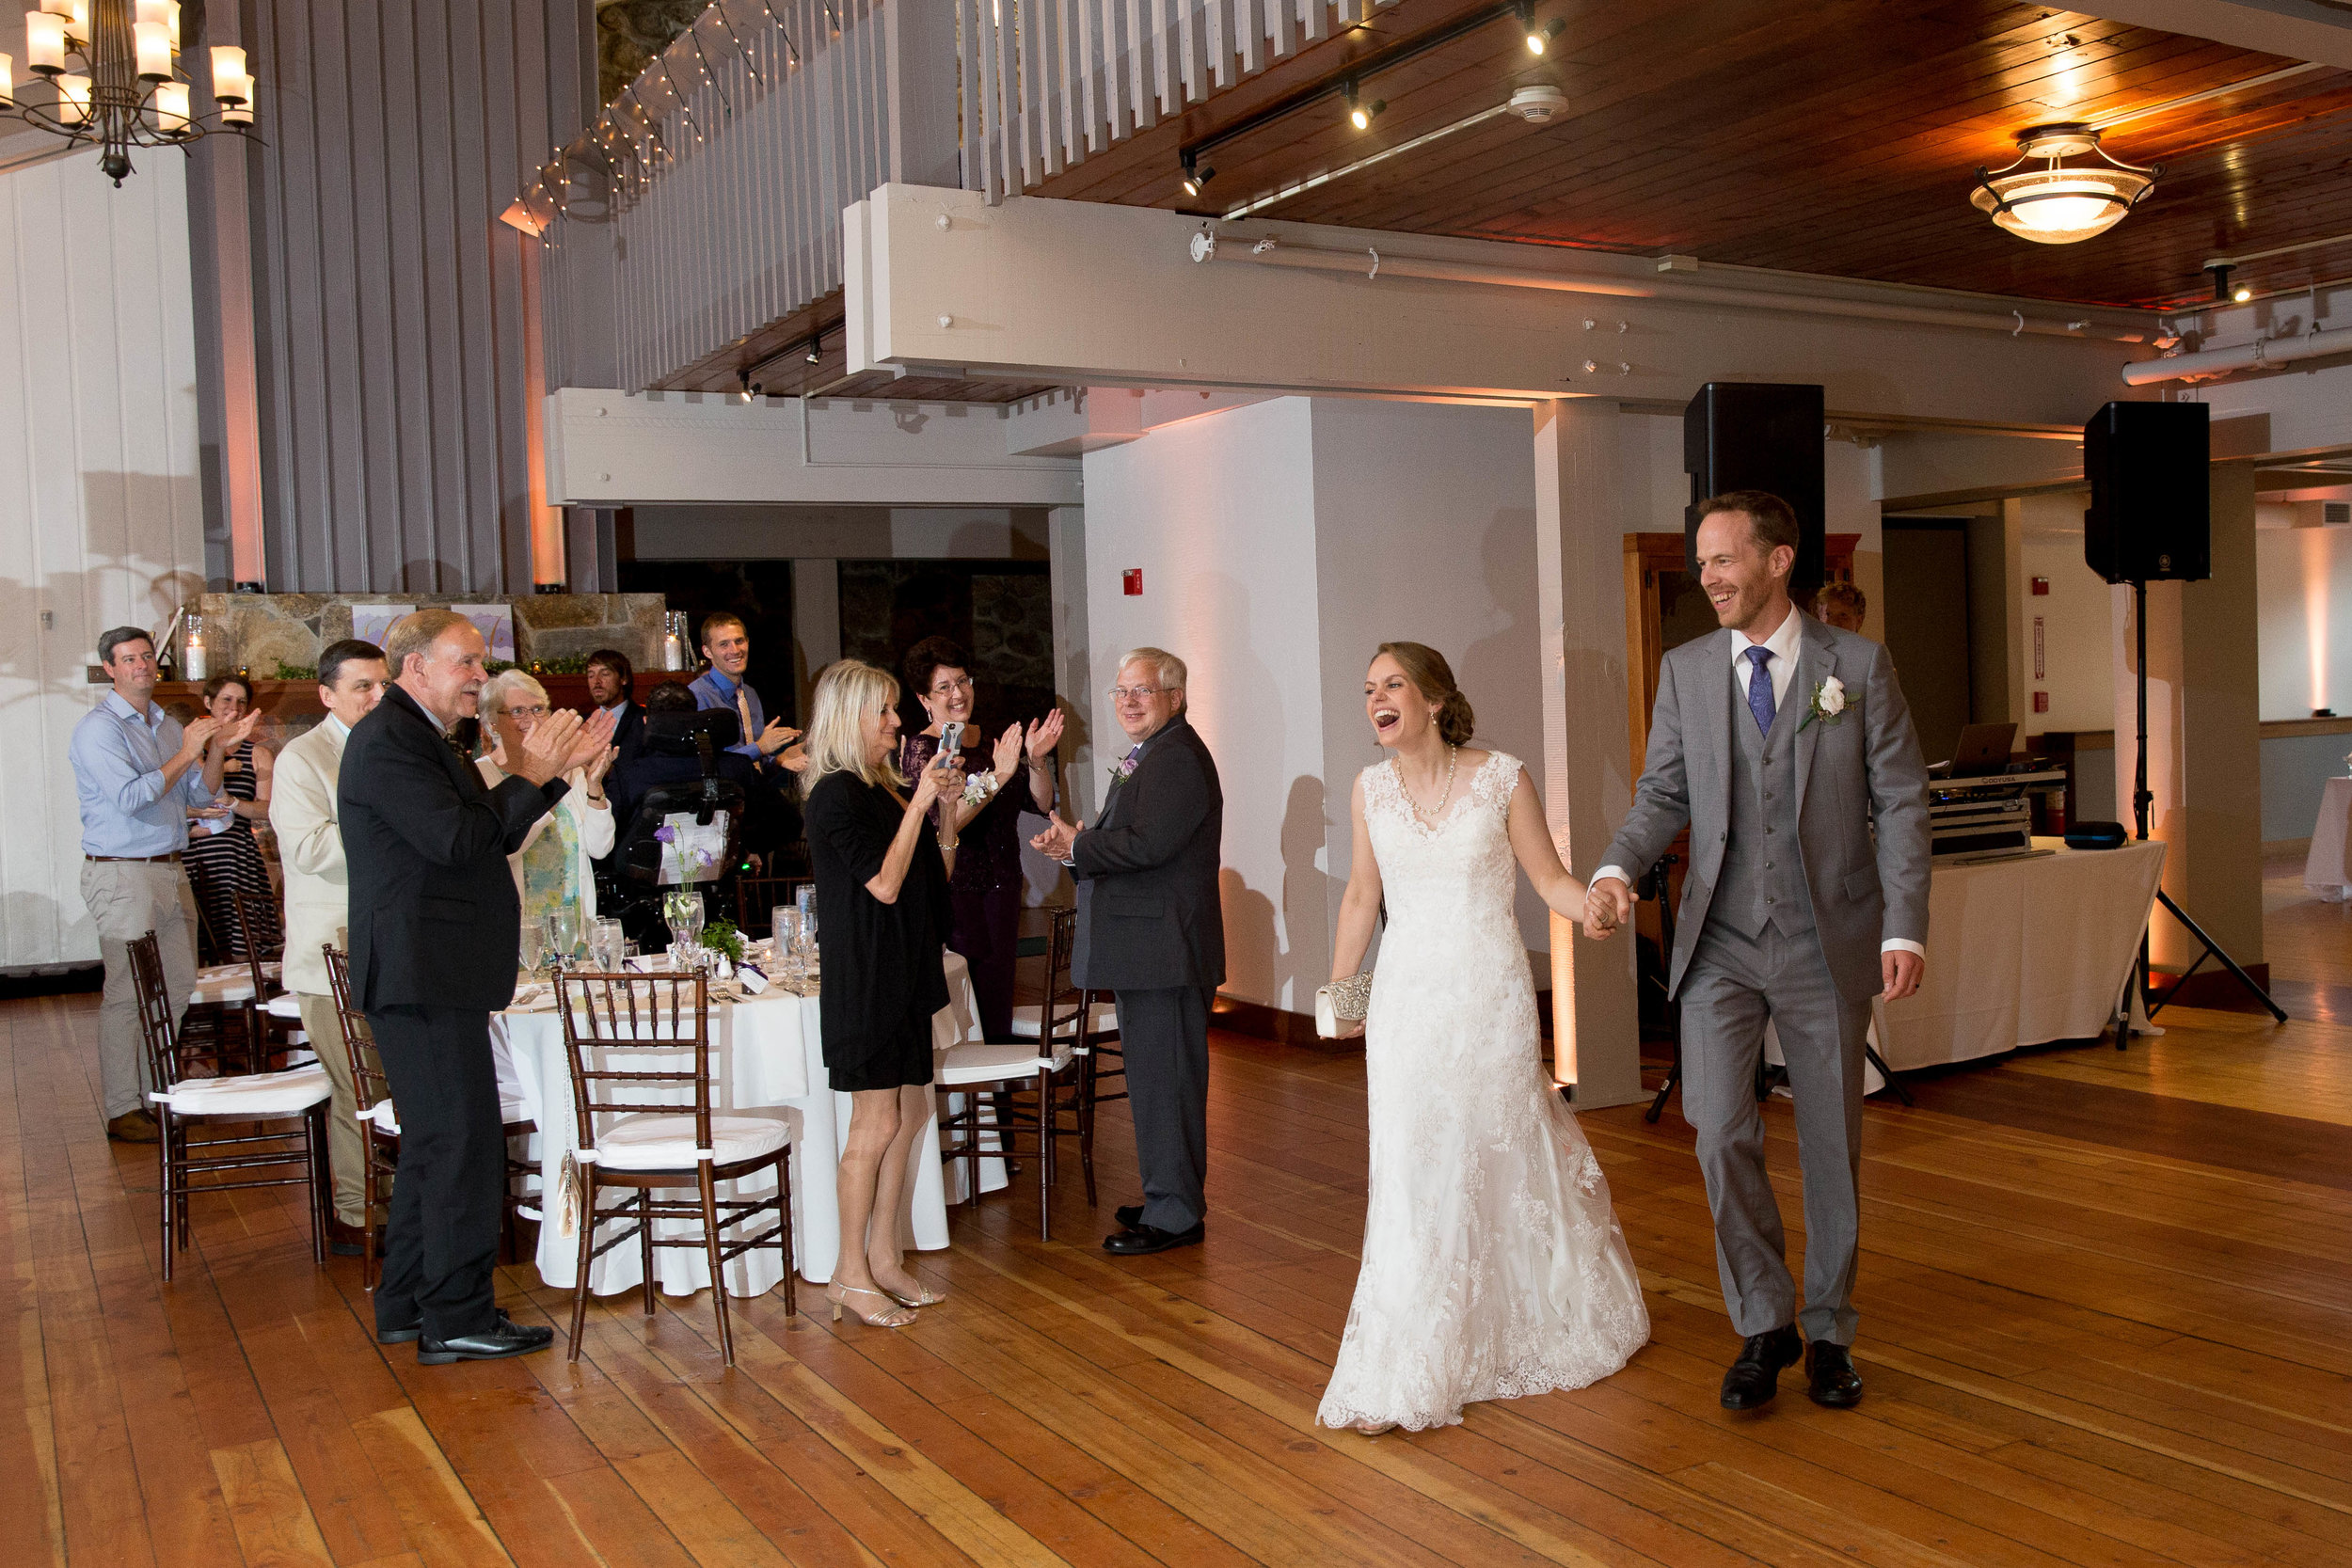 warrencenterwedding_0048.jpg